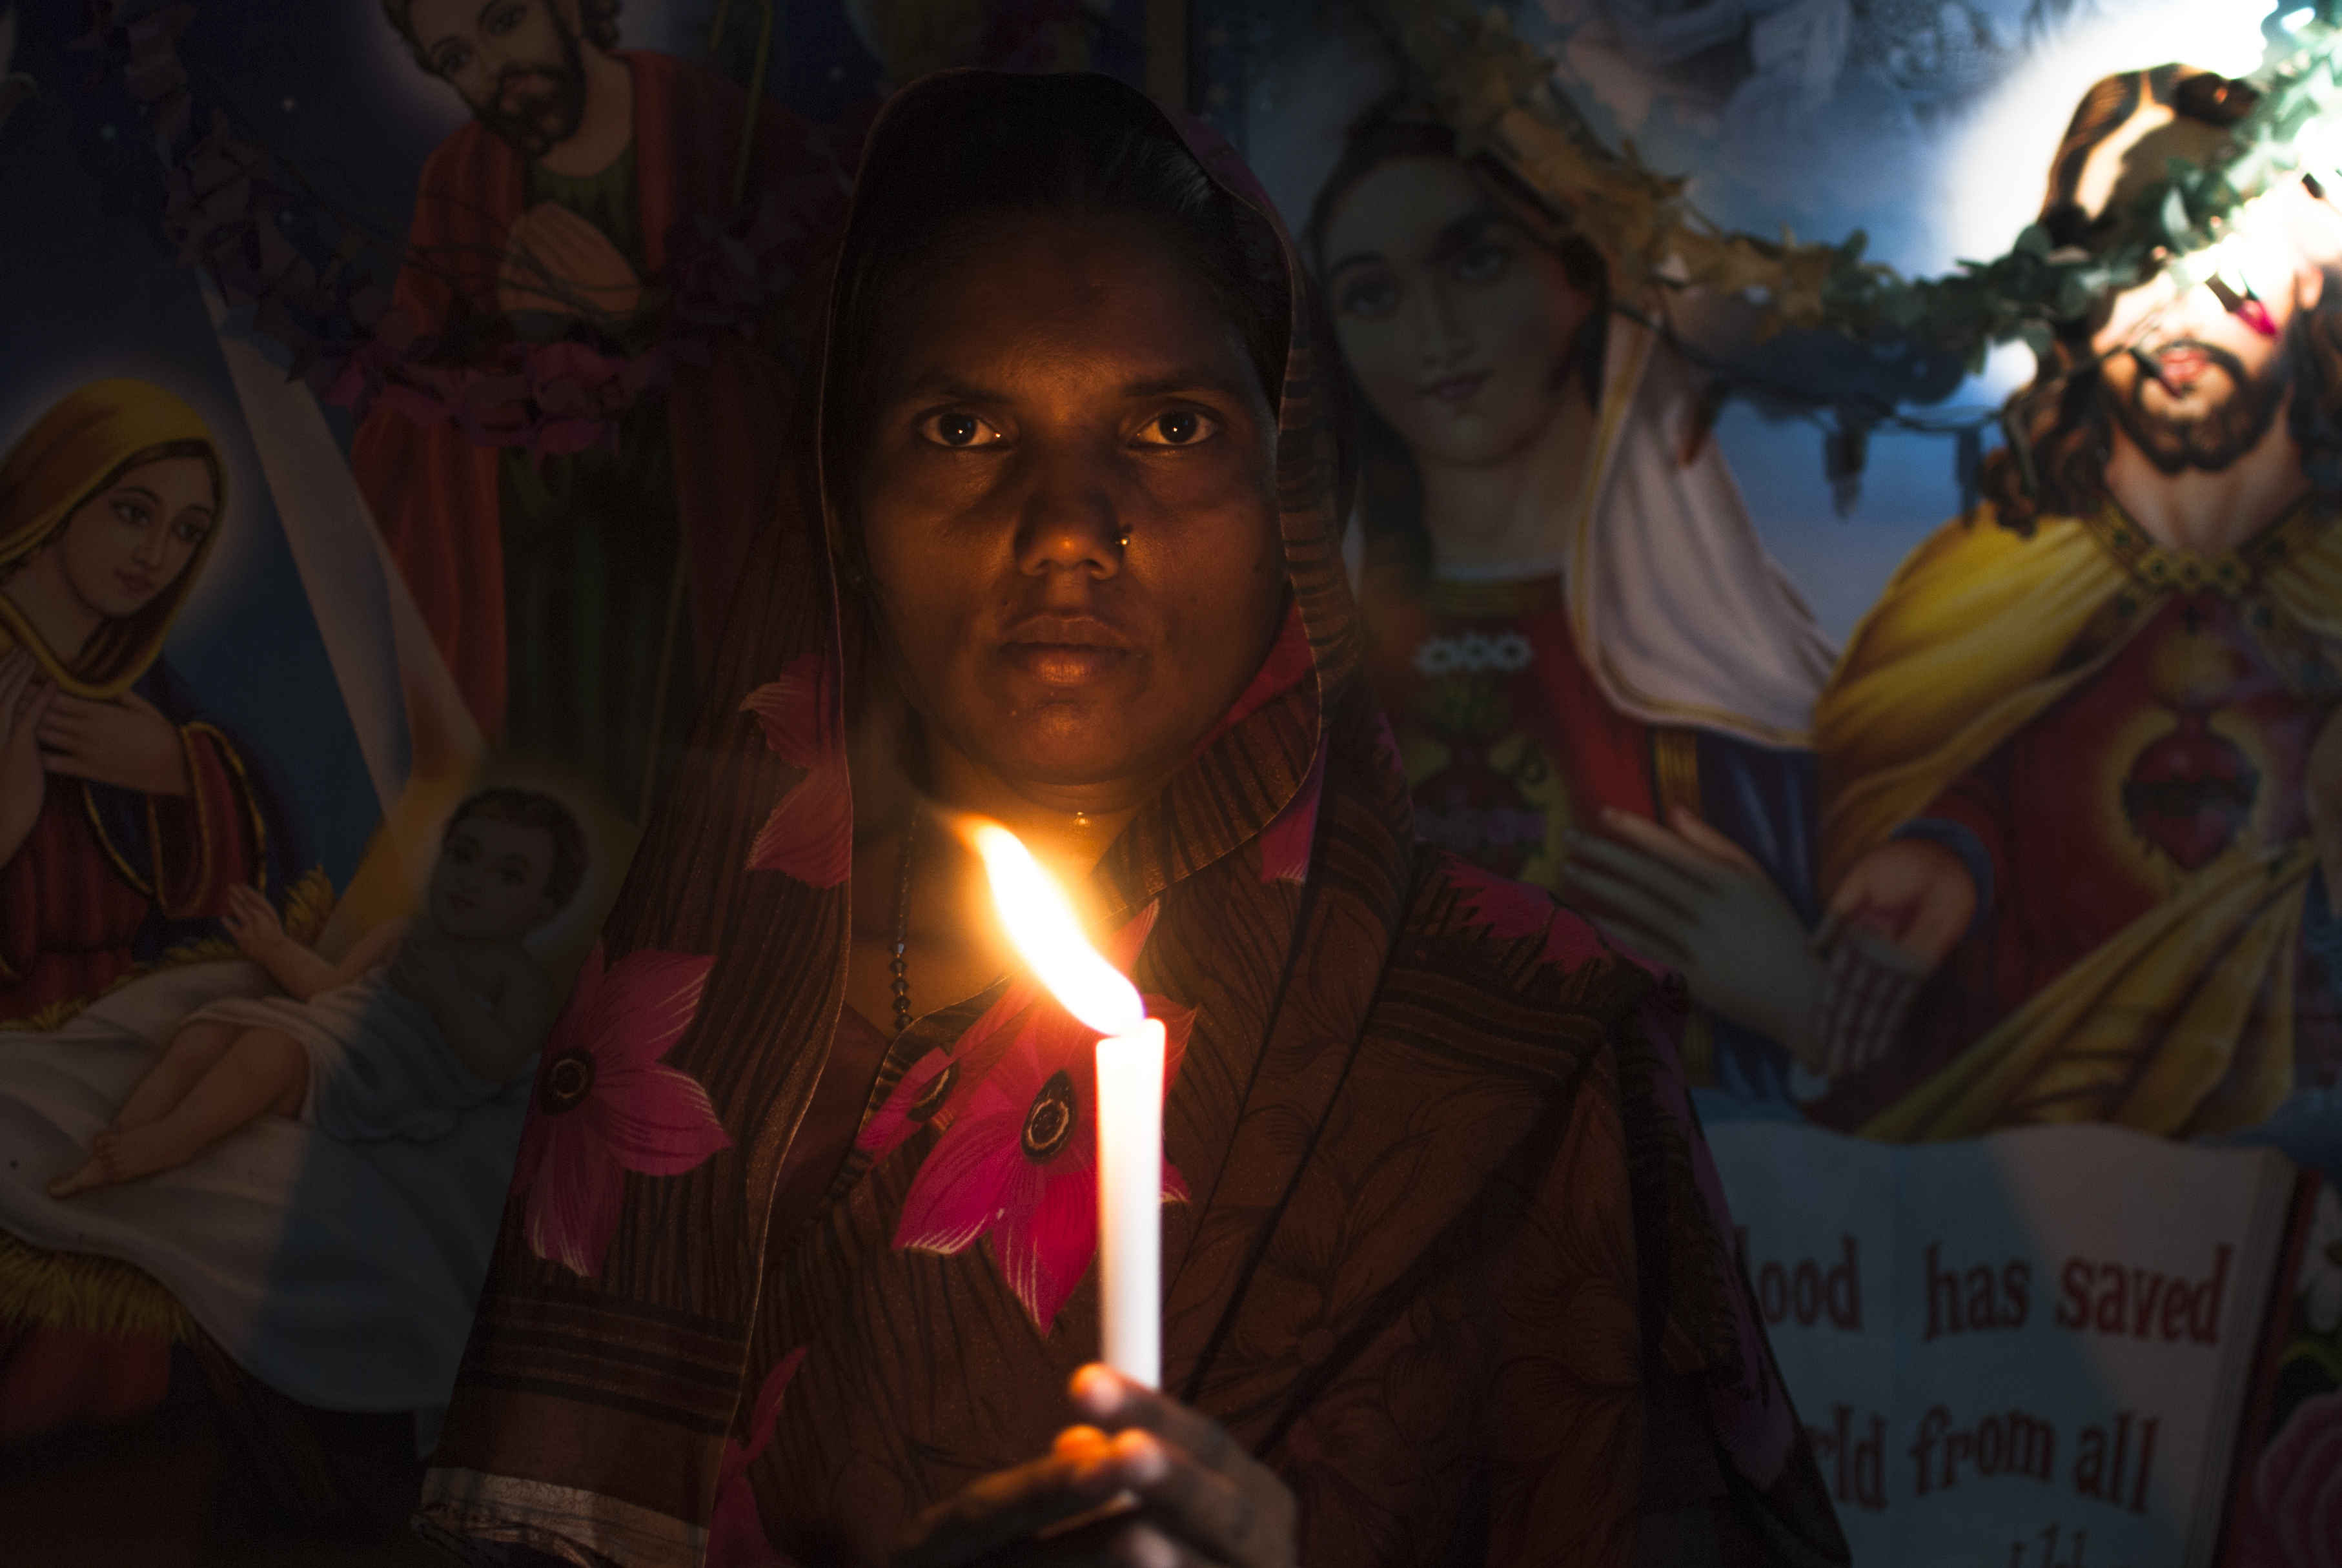 Woman holding candle - NEW DELHI; INDIA - MAY 17TH 2015